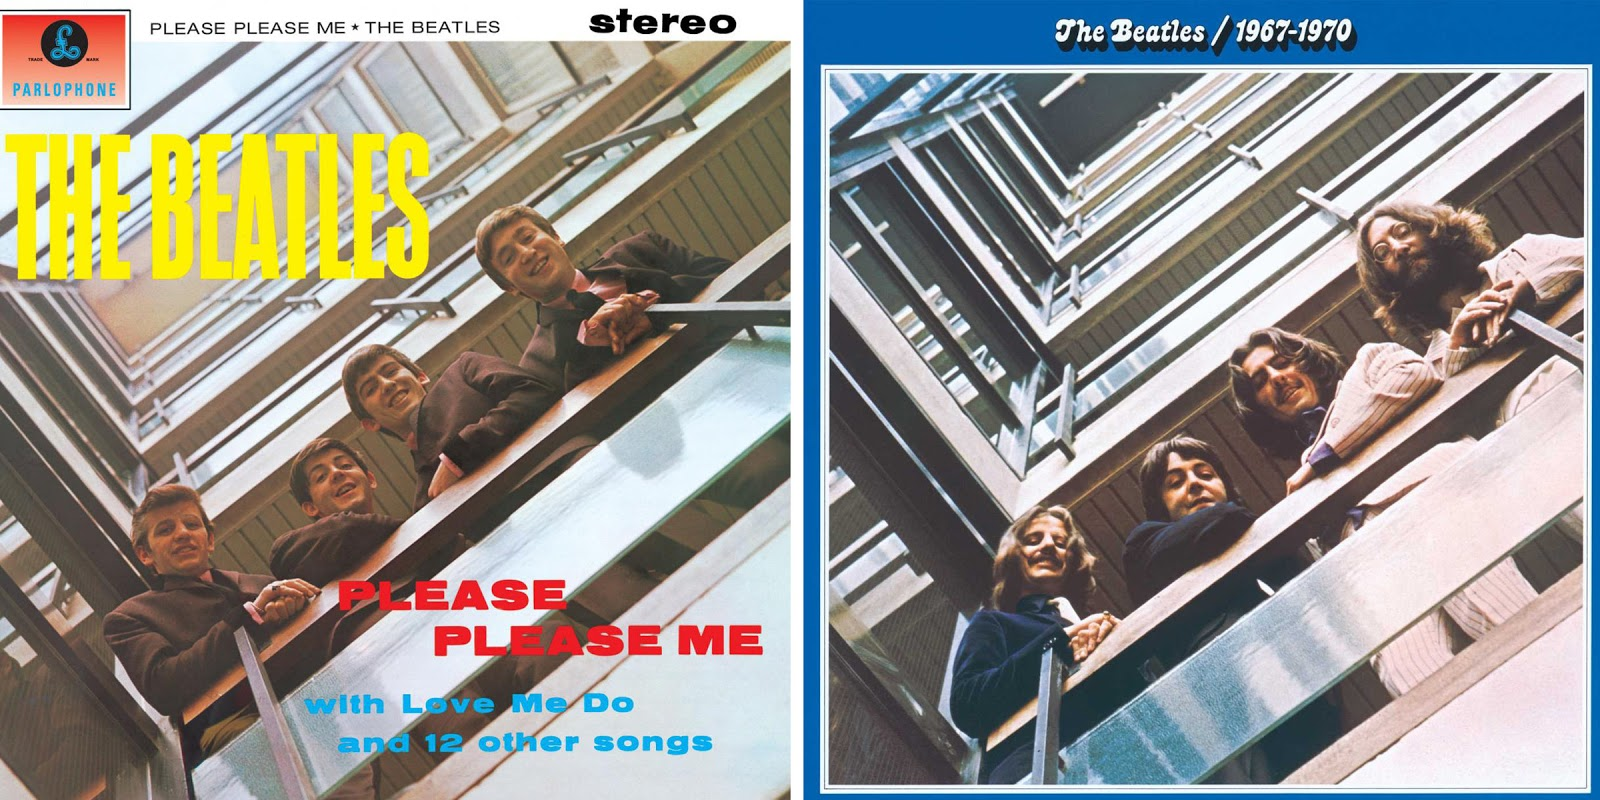 Os álbuns Please Please Me e The Beatles 1967-1970 [Créditos: Parlophone Records/Apple Records]